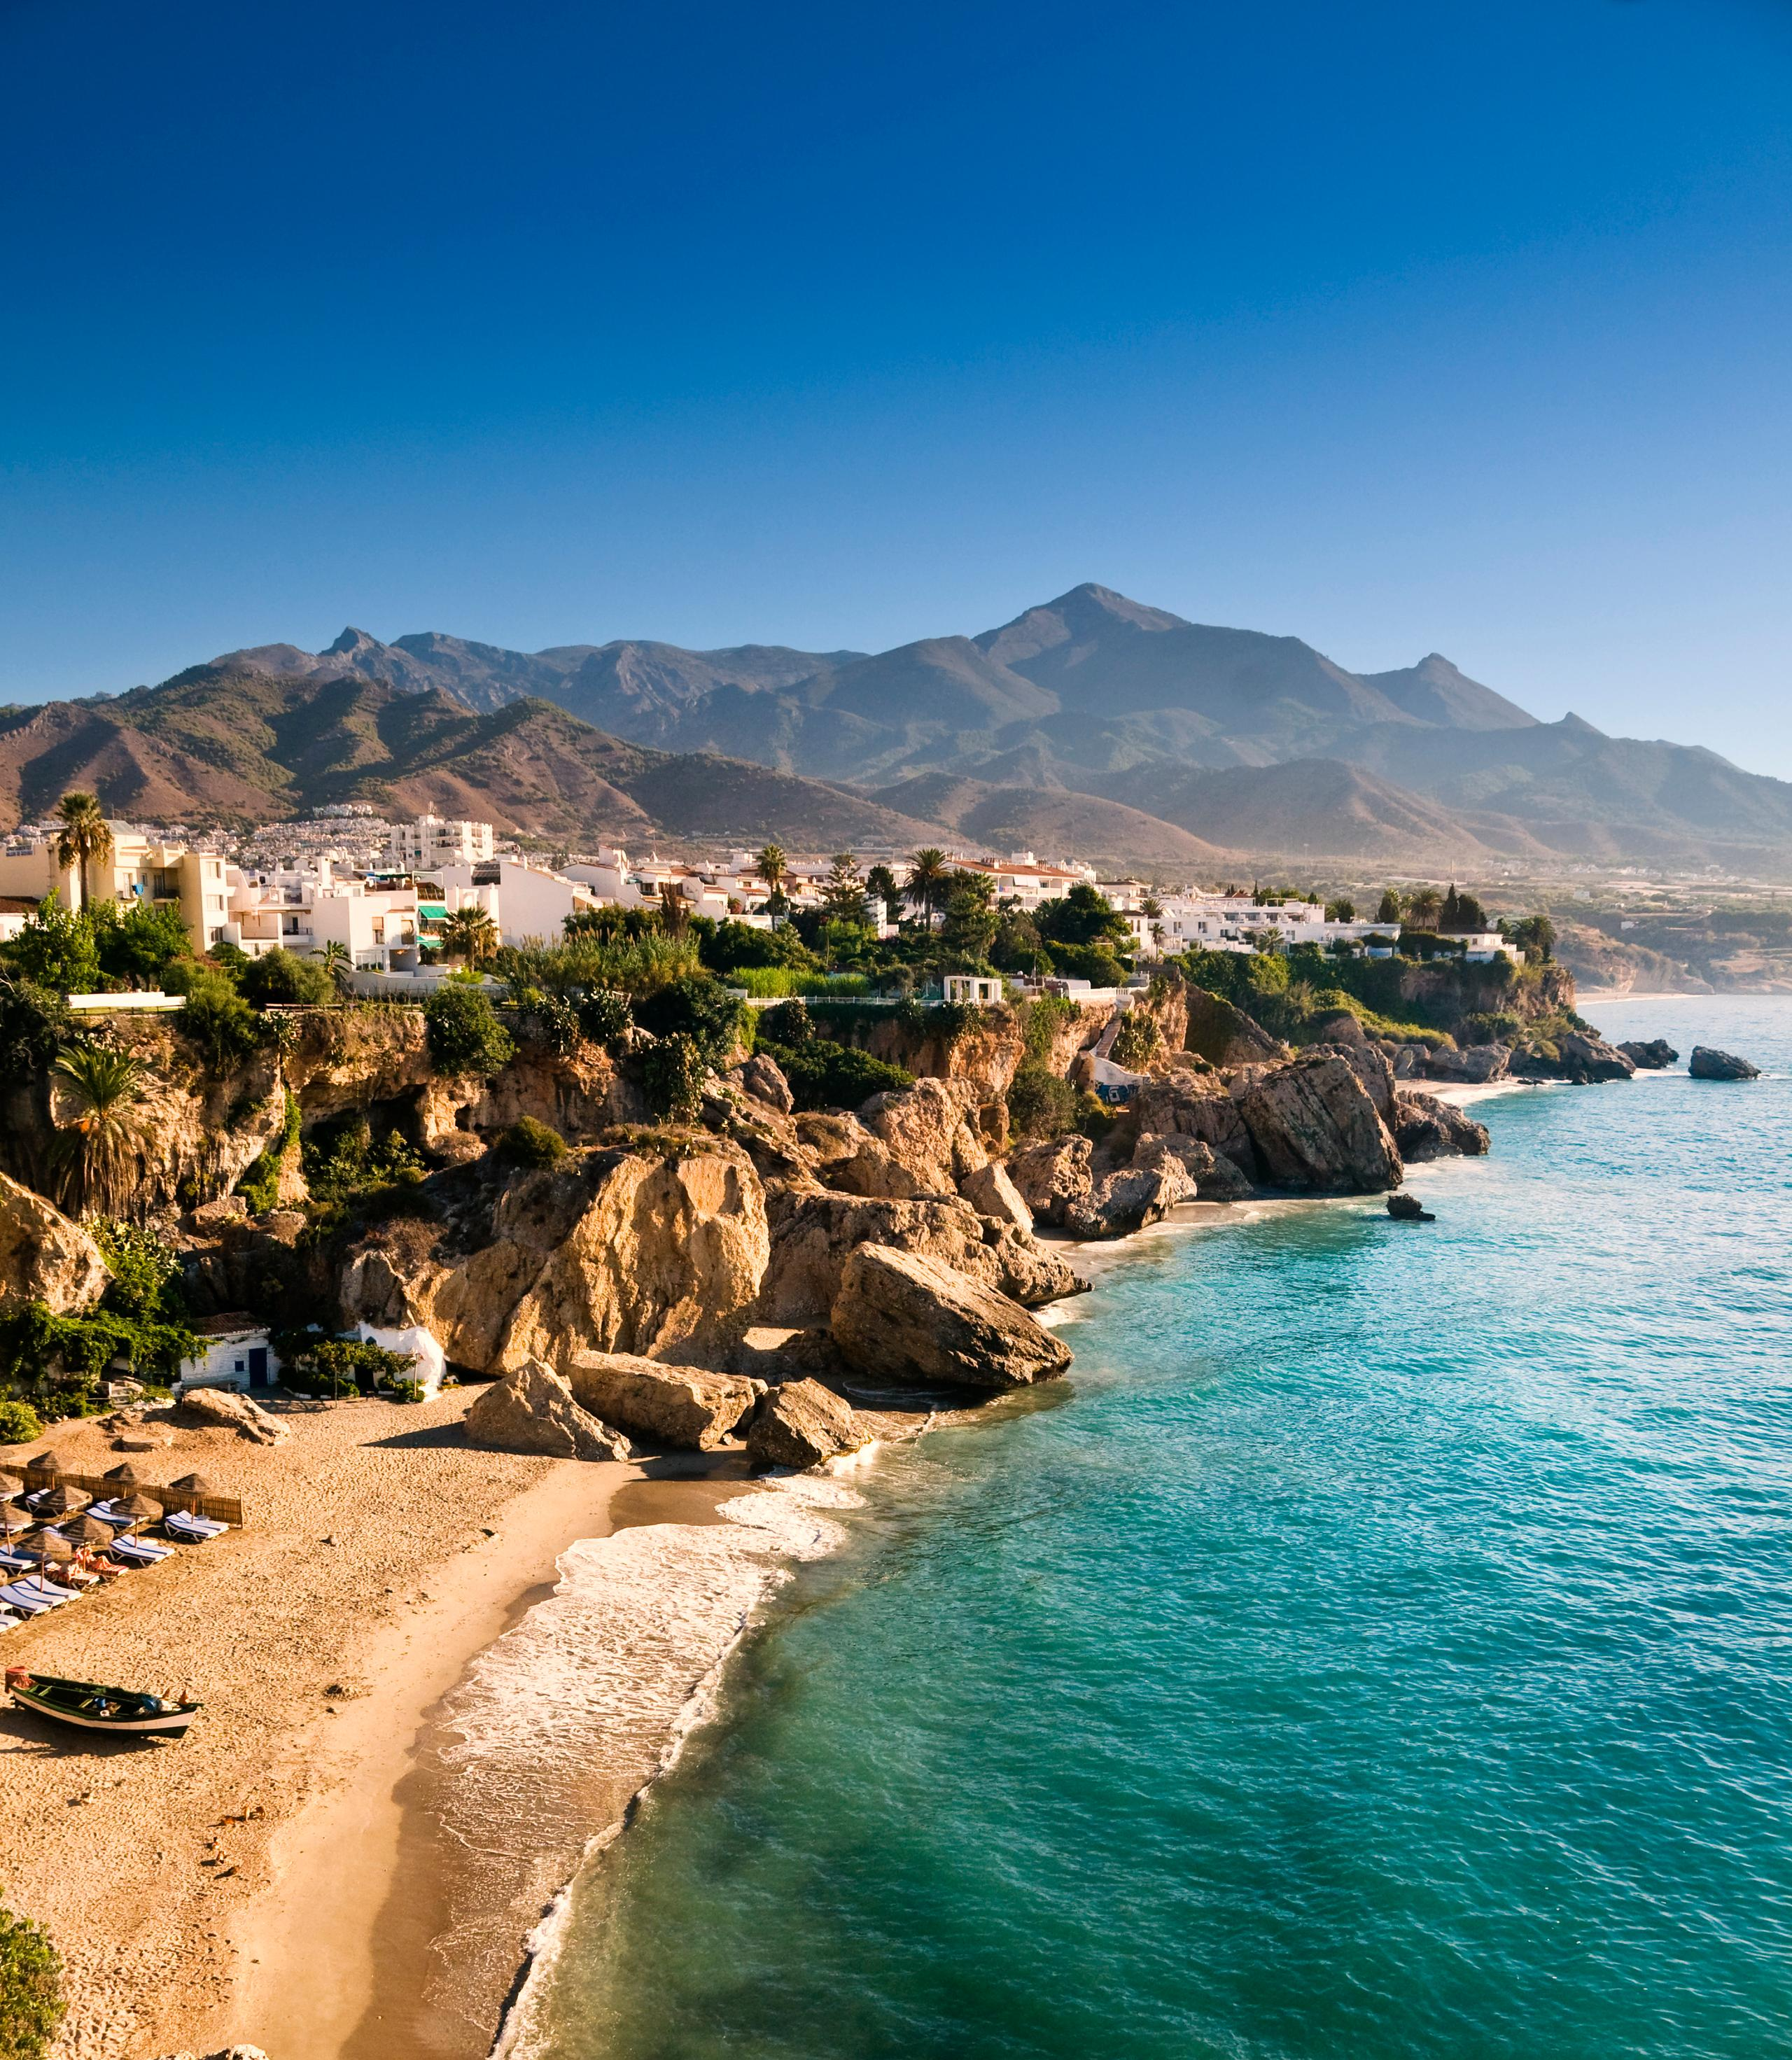 Toboso Apar Turis Hotels In Nerja From 12 Find Cheap Nerja Hotels With Momondo